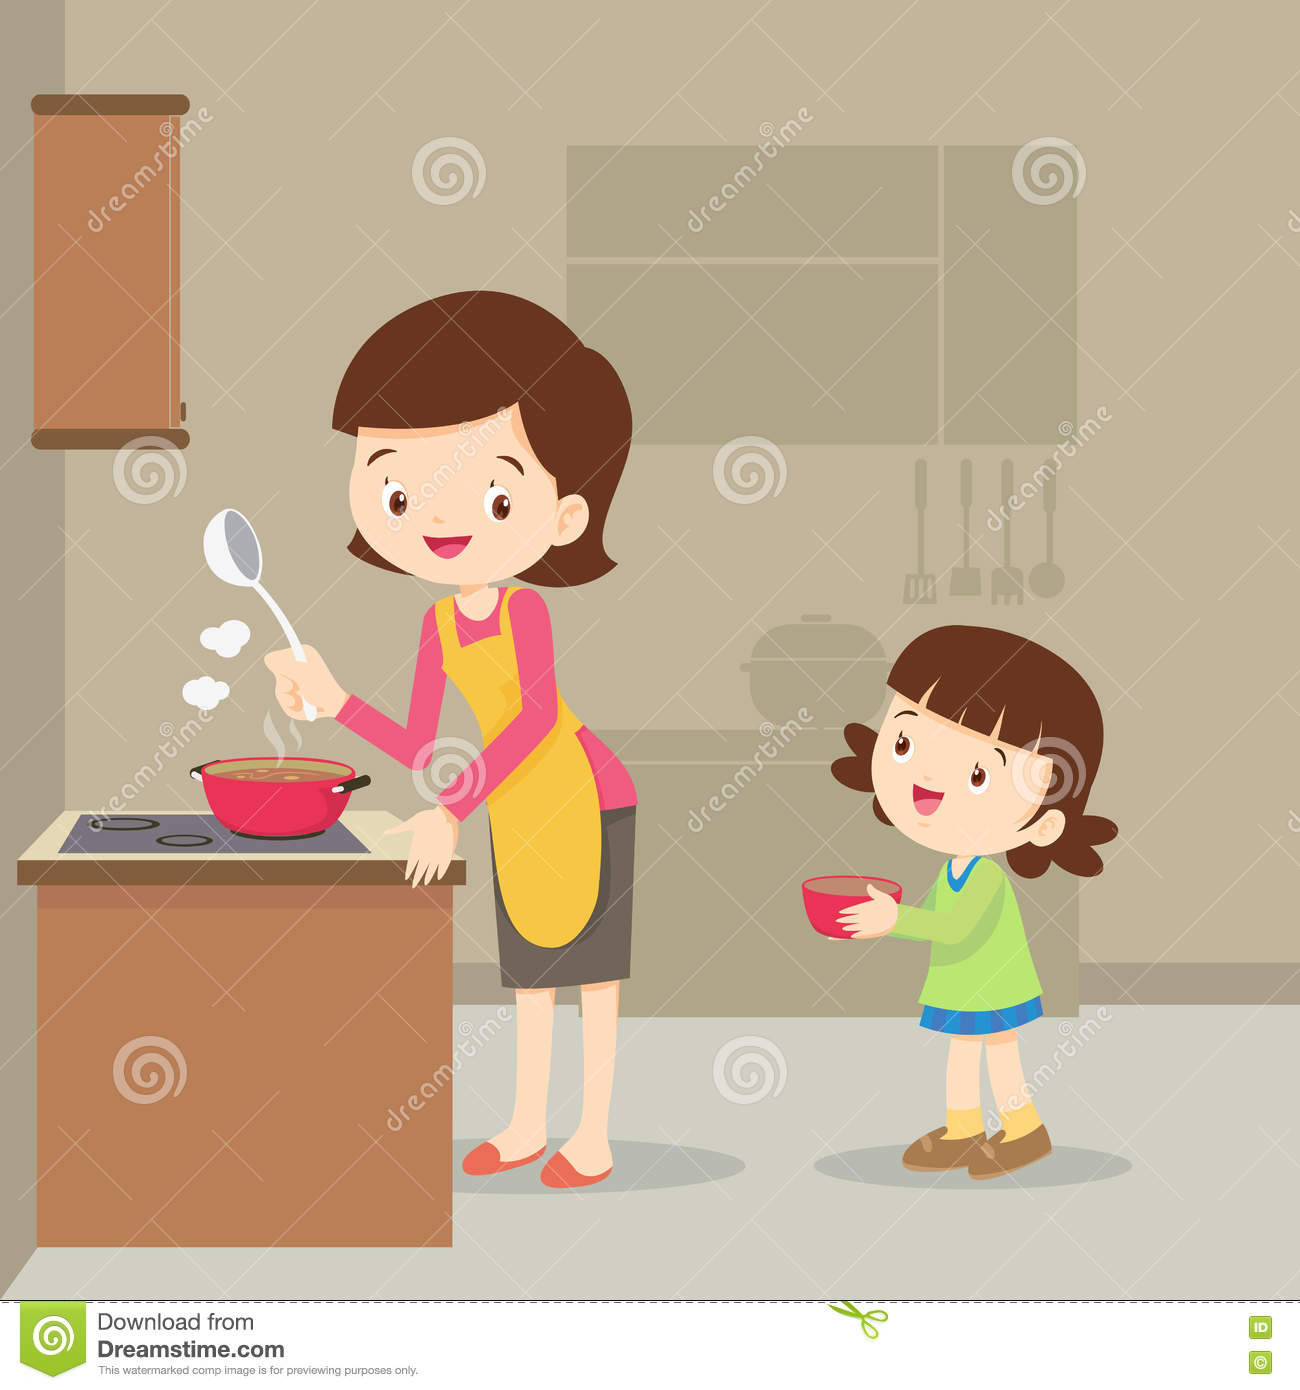 Mother clipart kitchen clipart. Girl and cooking in clip library